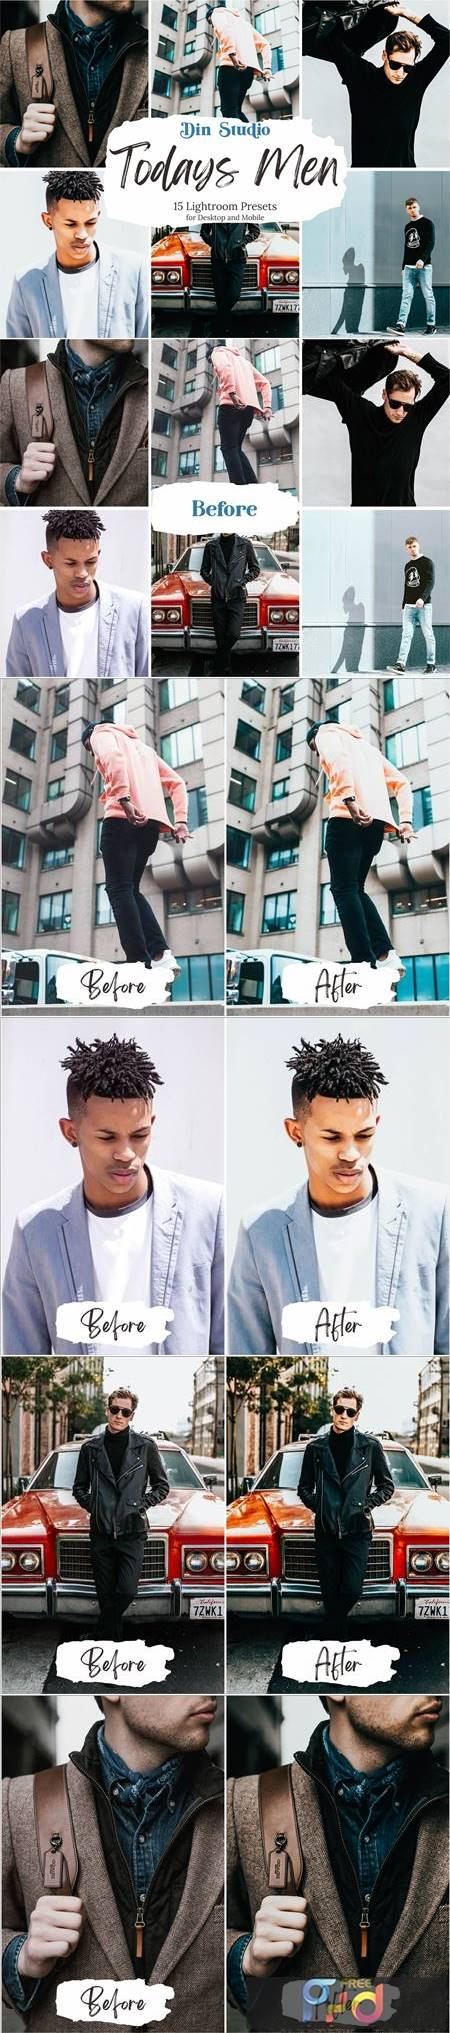 Todays Men Lightroom Presets 5482311 1